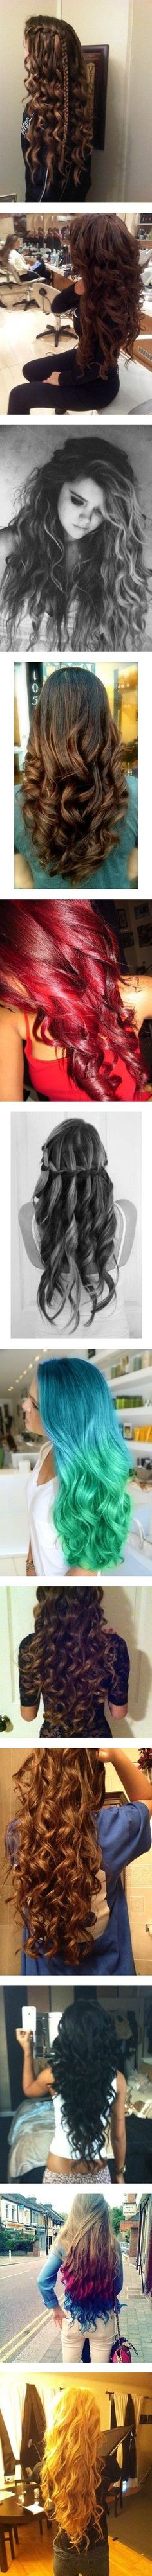 Which of these long hair styles do you dream of having?  :)